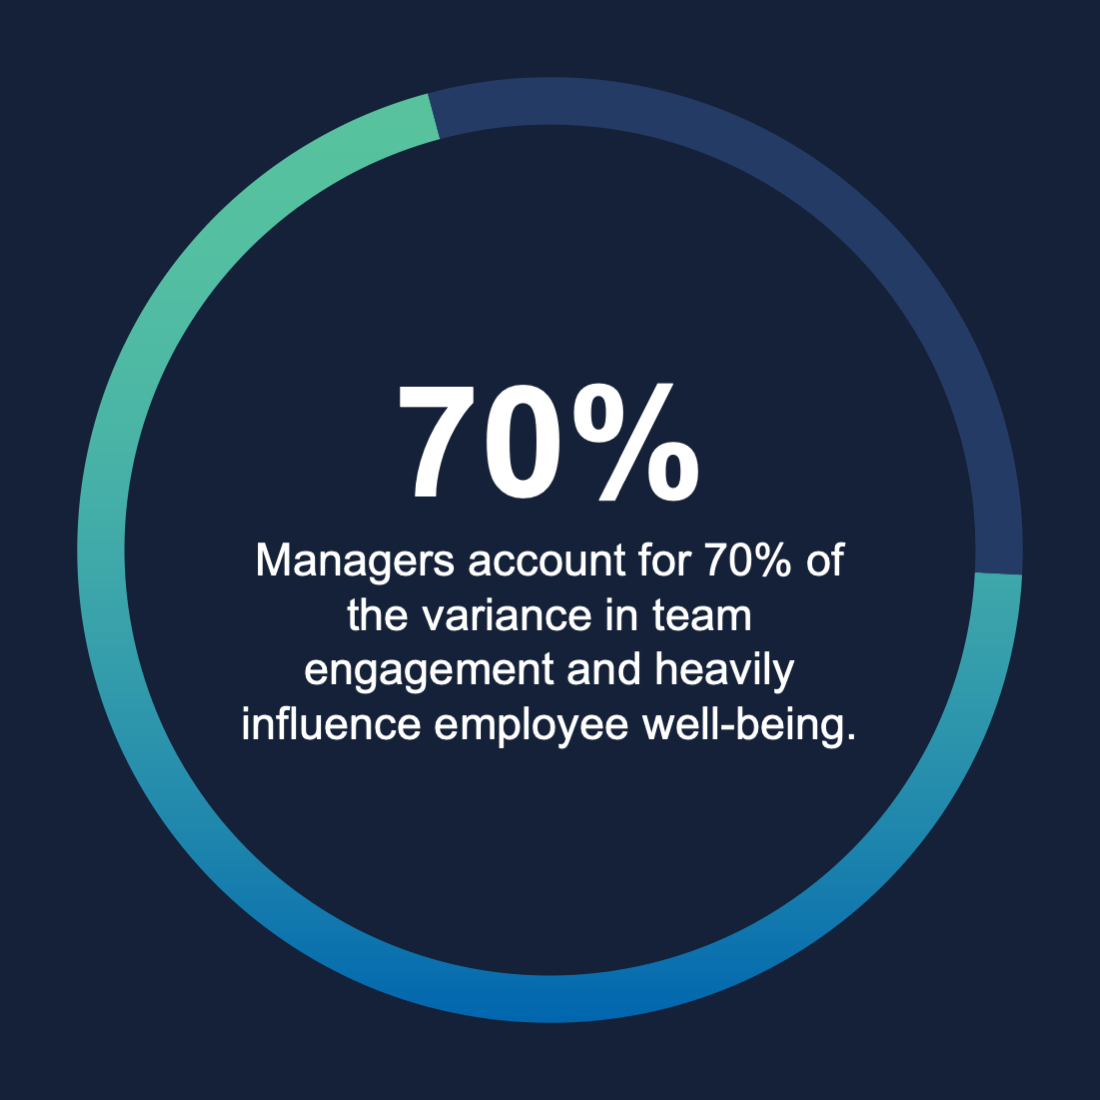 statistic on employee engagement and role of manager